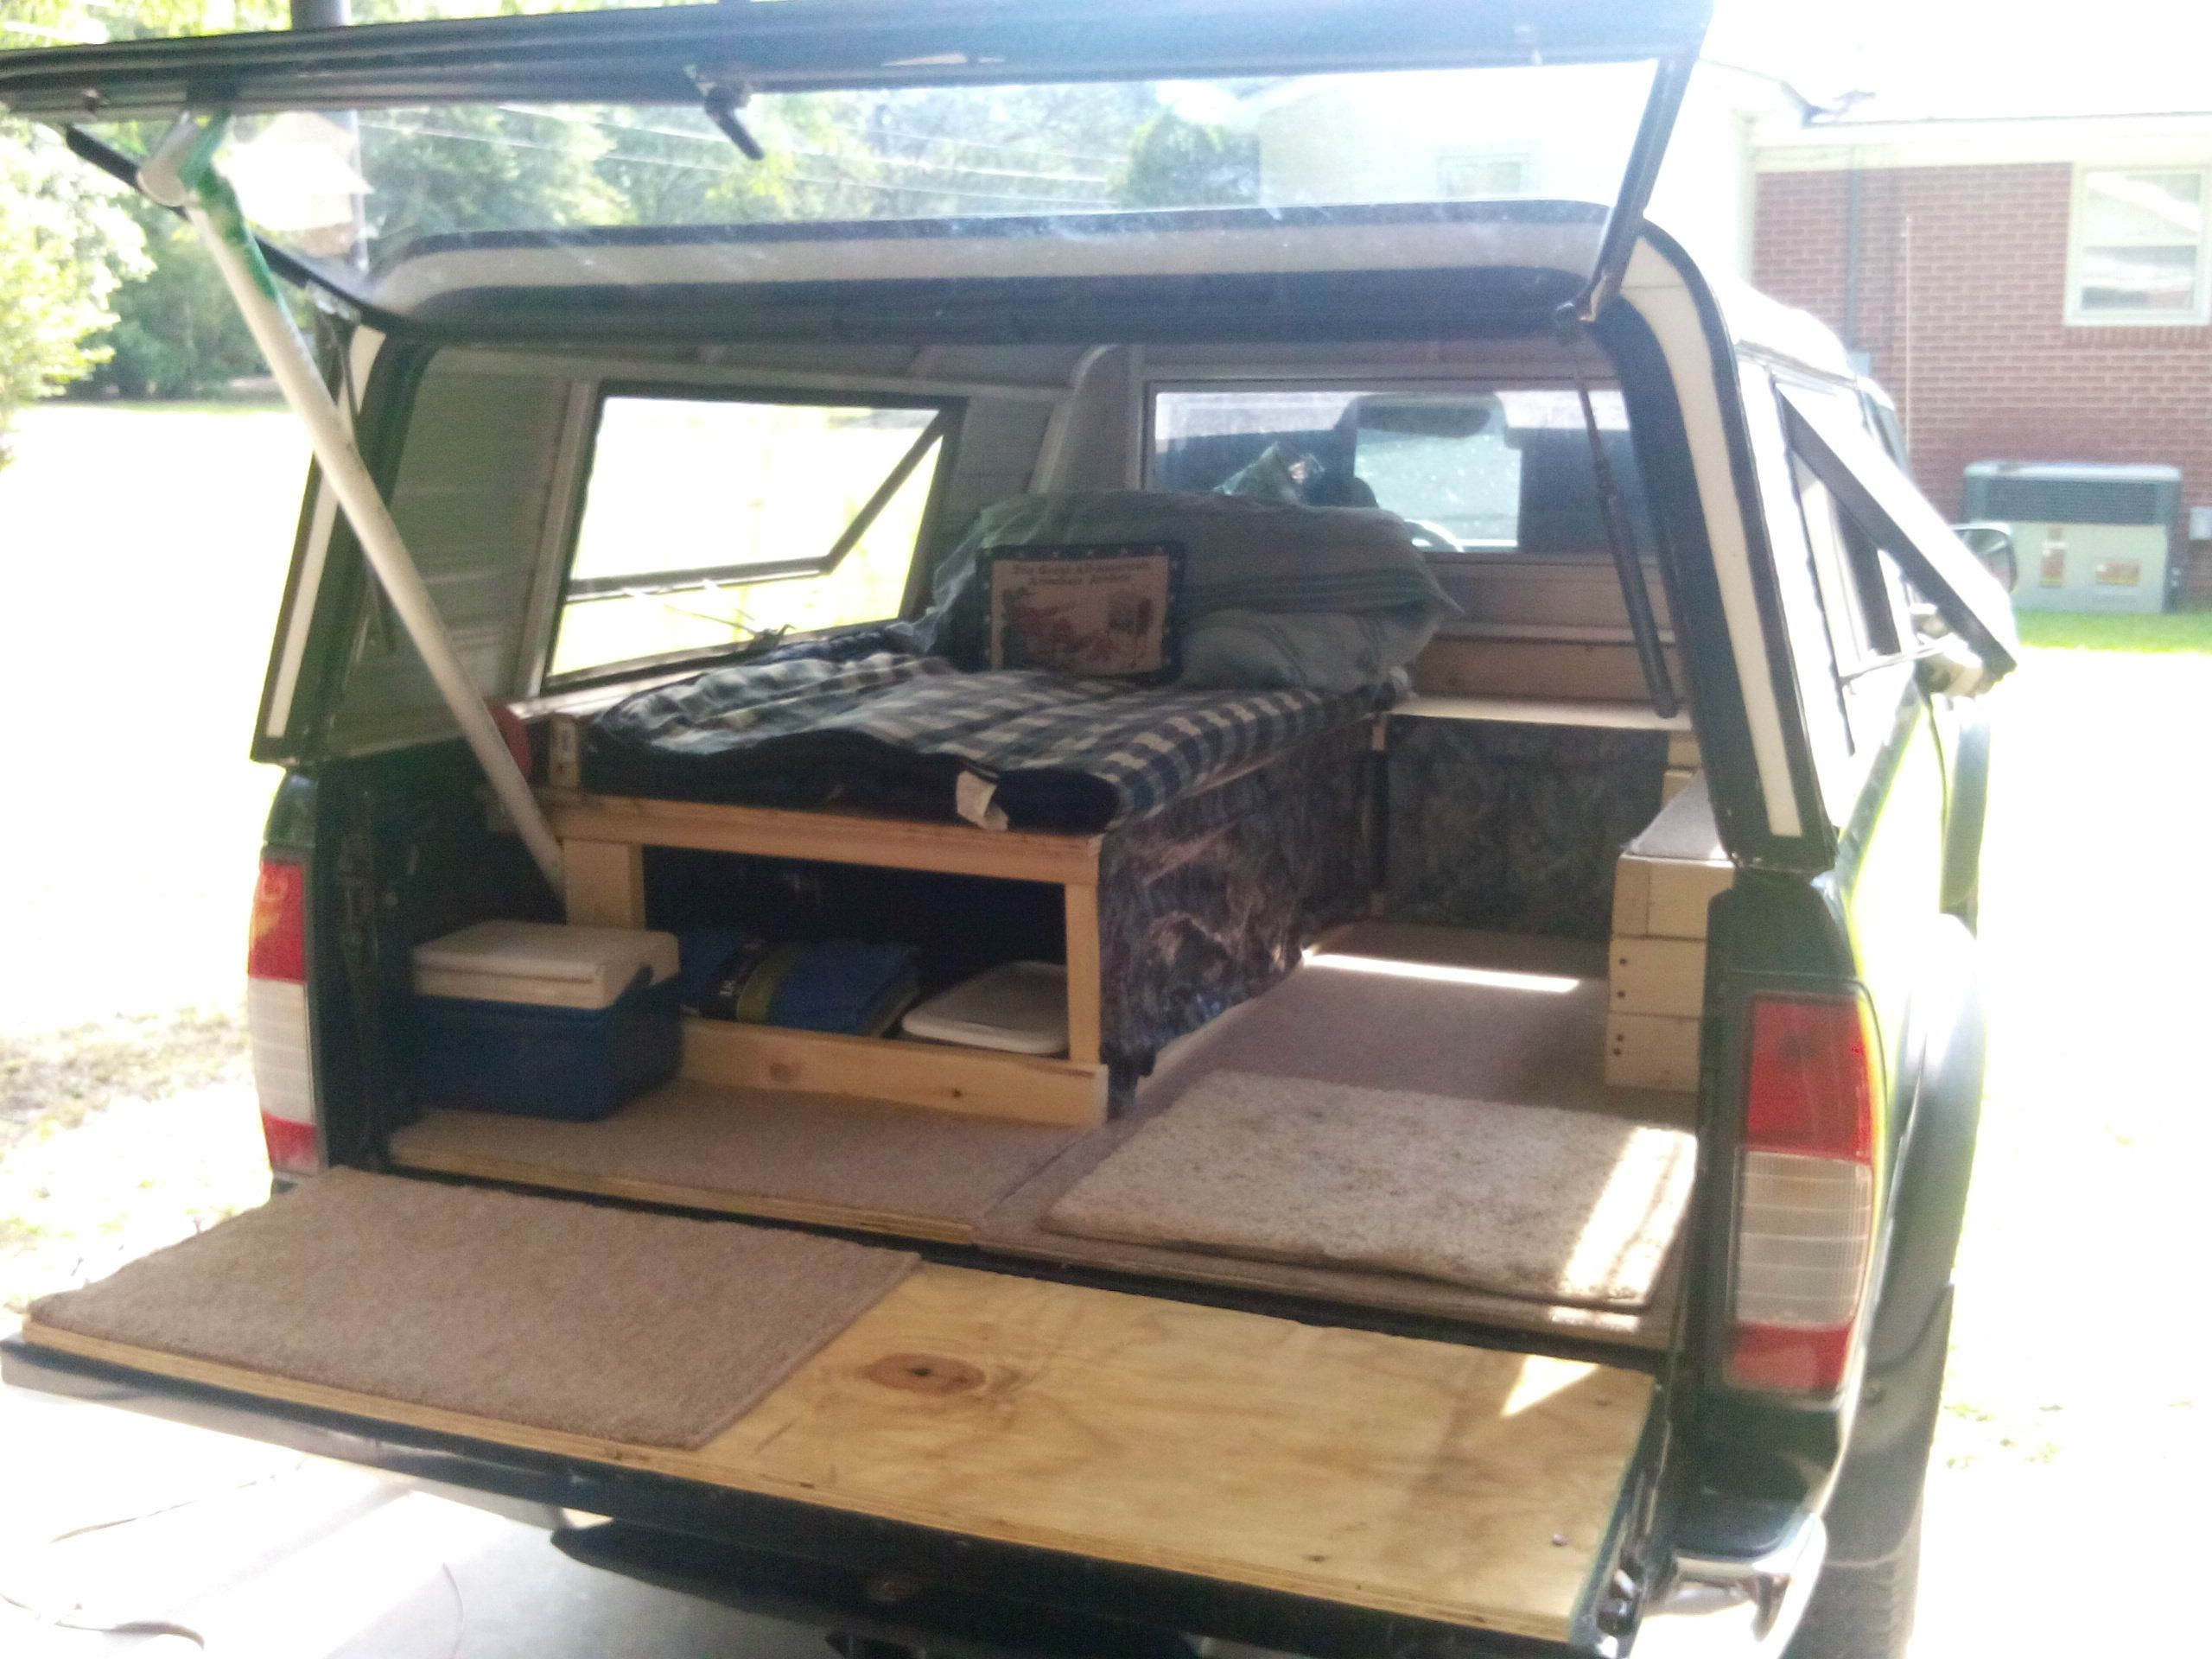 Camper Shell Camping >> Camper Shell On Camping Truck Camper Shells Camper Shells